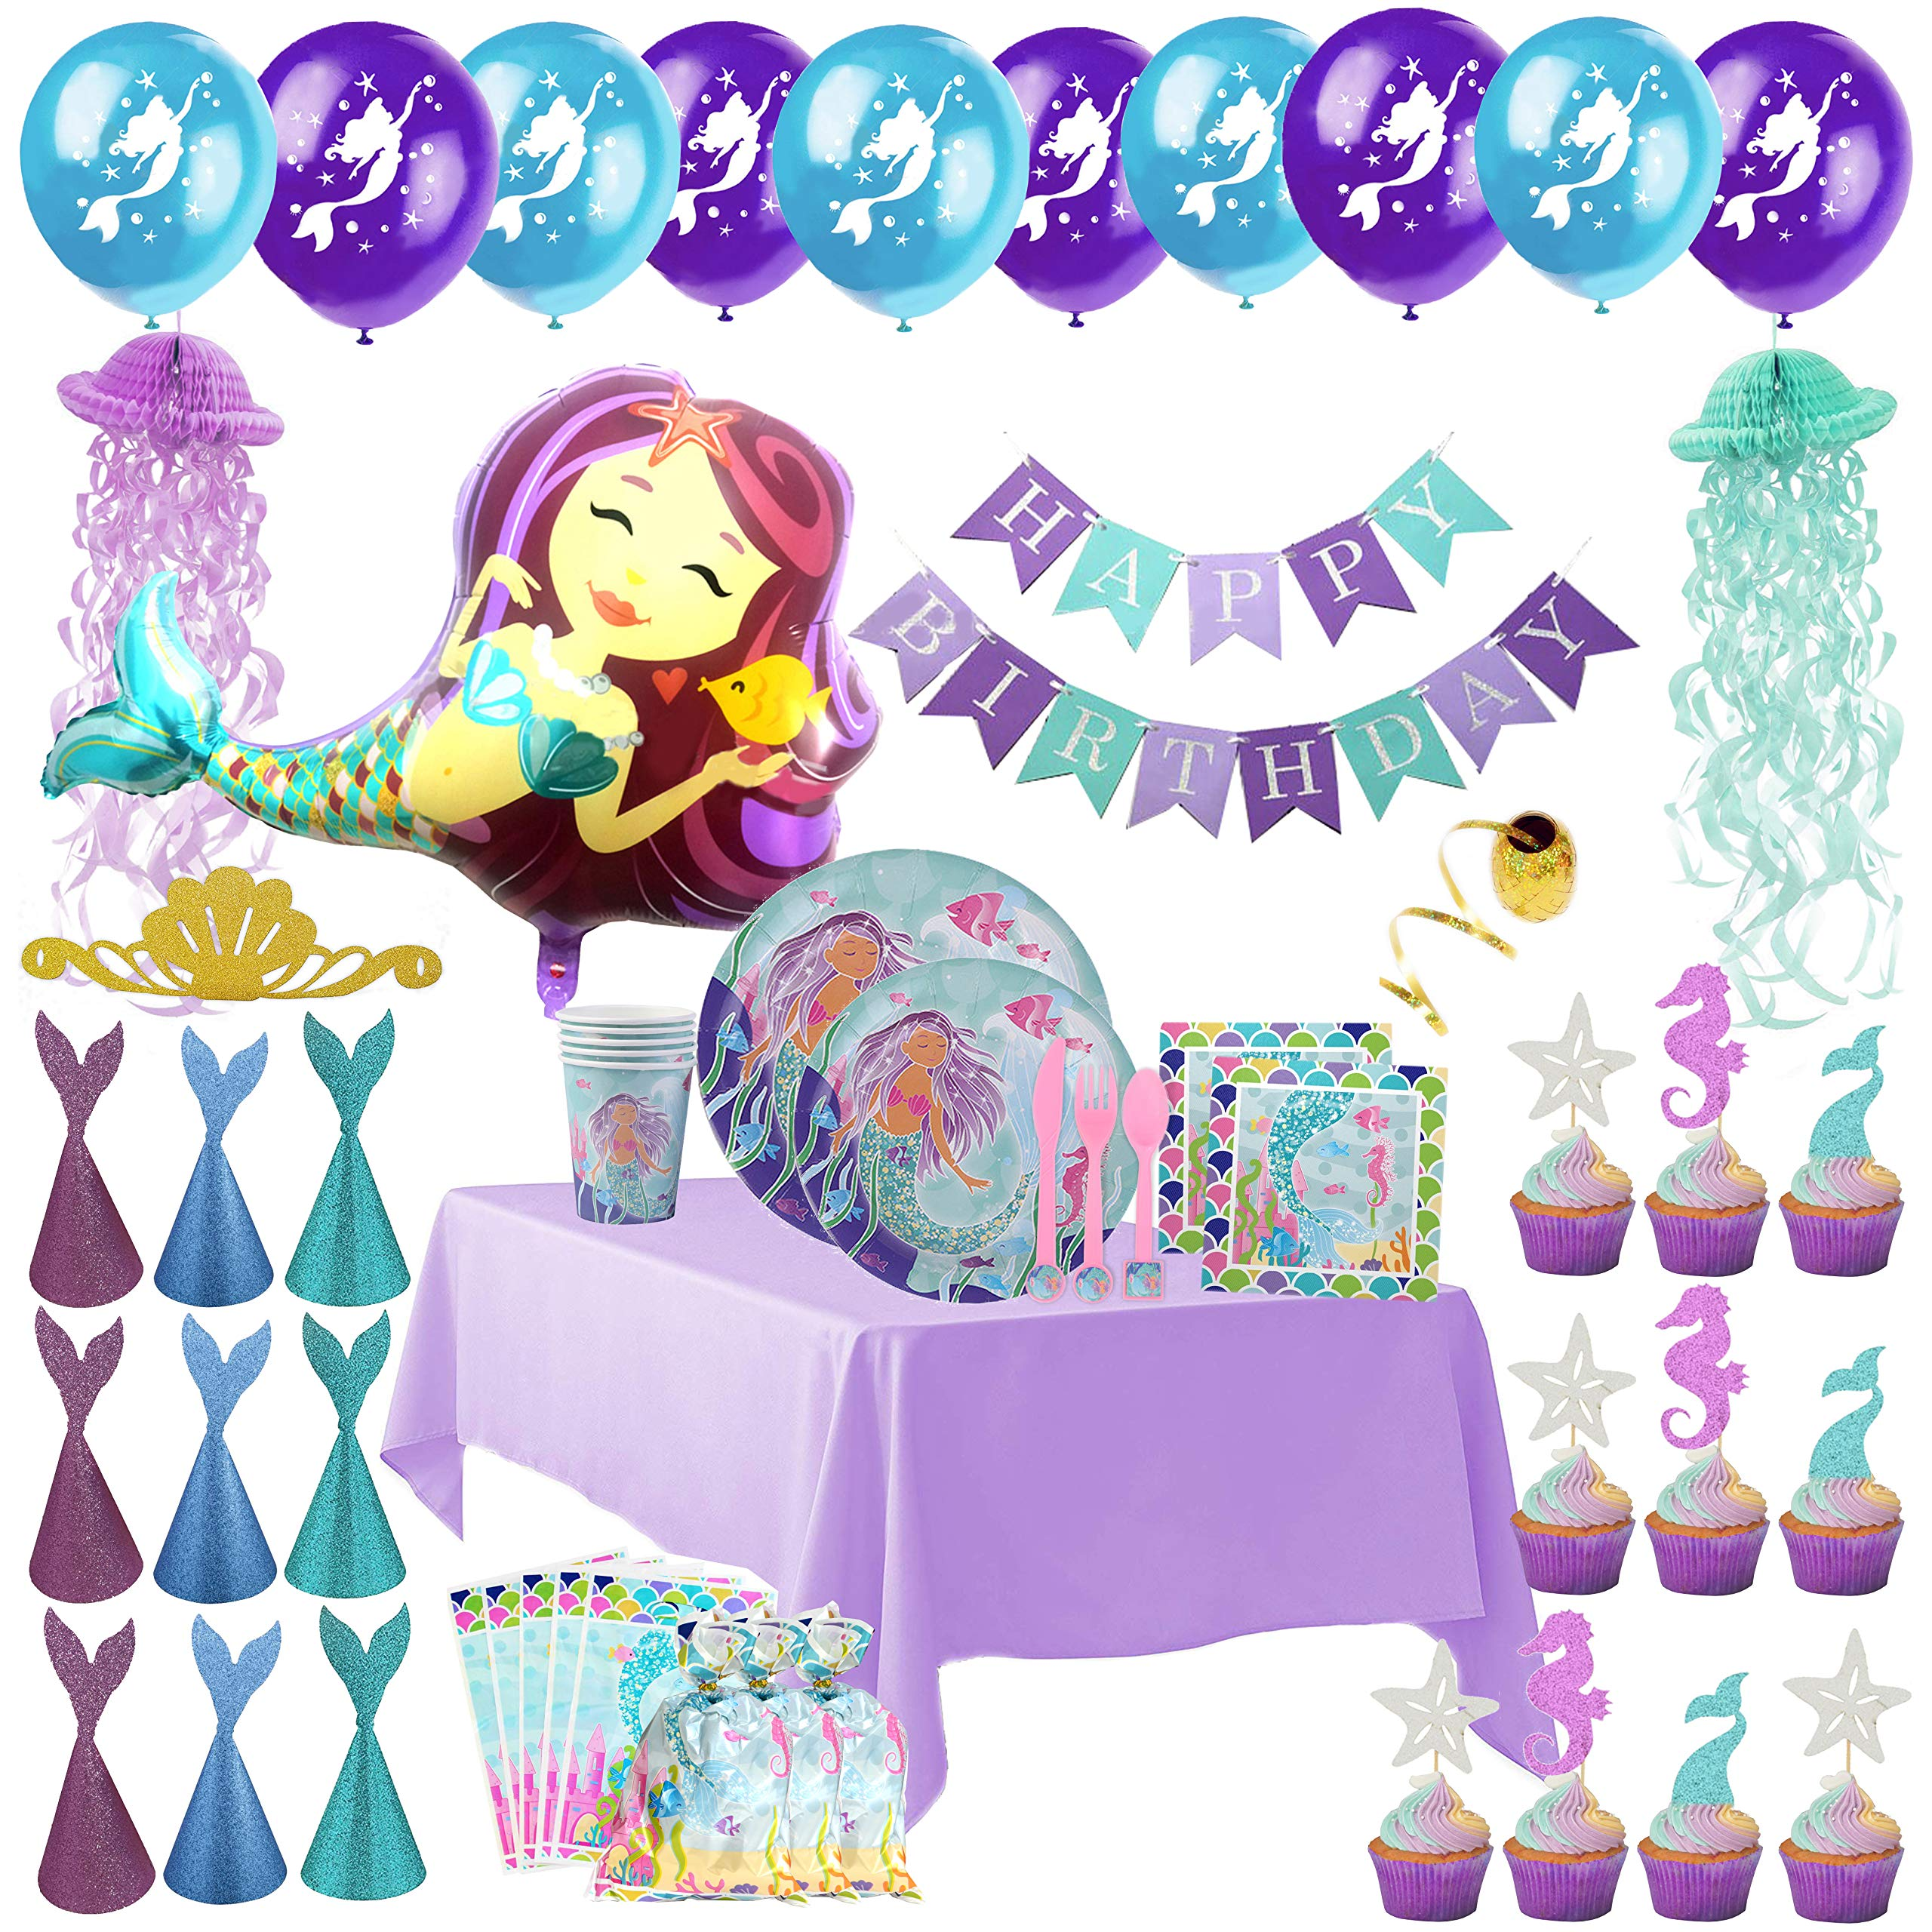 Mermaid Party Supplies - Complete Tableware and Decoration Deluxe Set - Plates, Cups, Utensils, Napkins, Table Cloth, Balloons, Happy Birthday Banner, Cupcake Topper, Favor Bags, Mermaid Hats & Crown